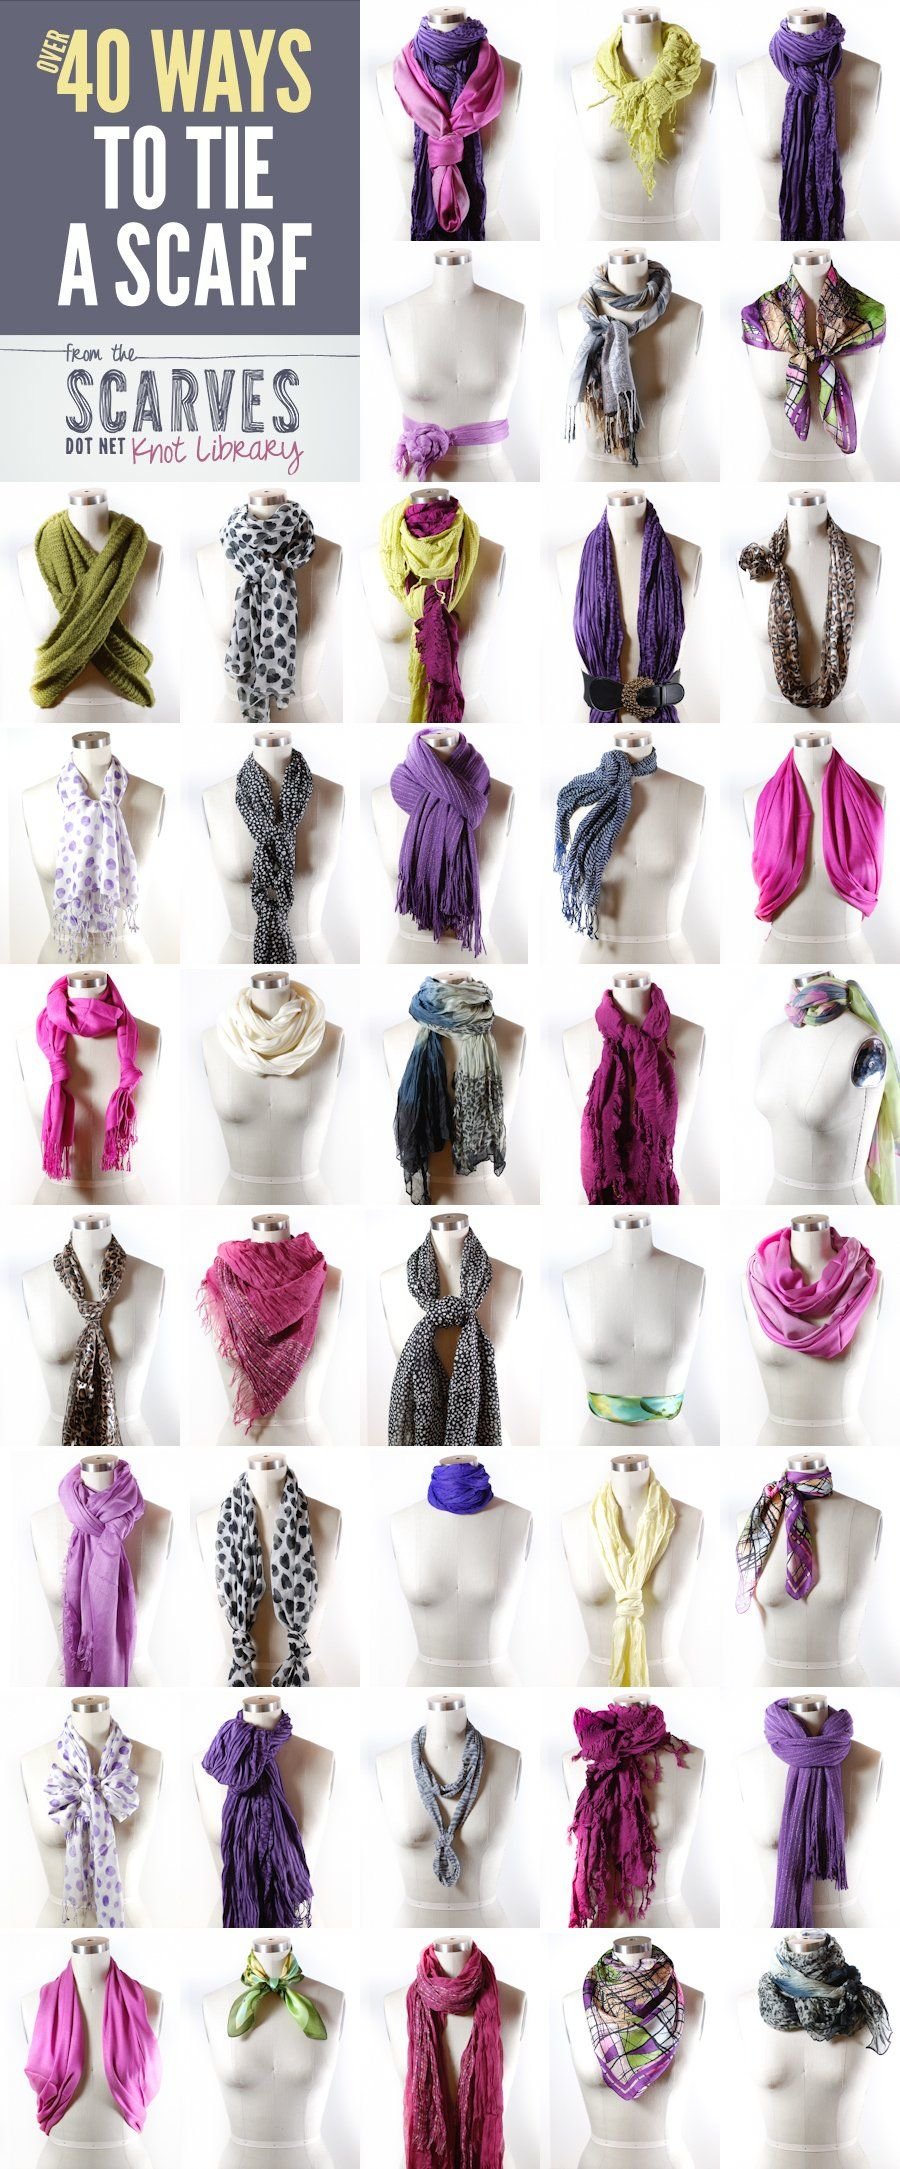 50+ Ways to Tie a Scarf @scarvesdotnet...click on the style you like to get the instructions #scarves